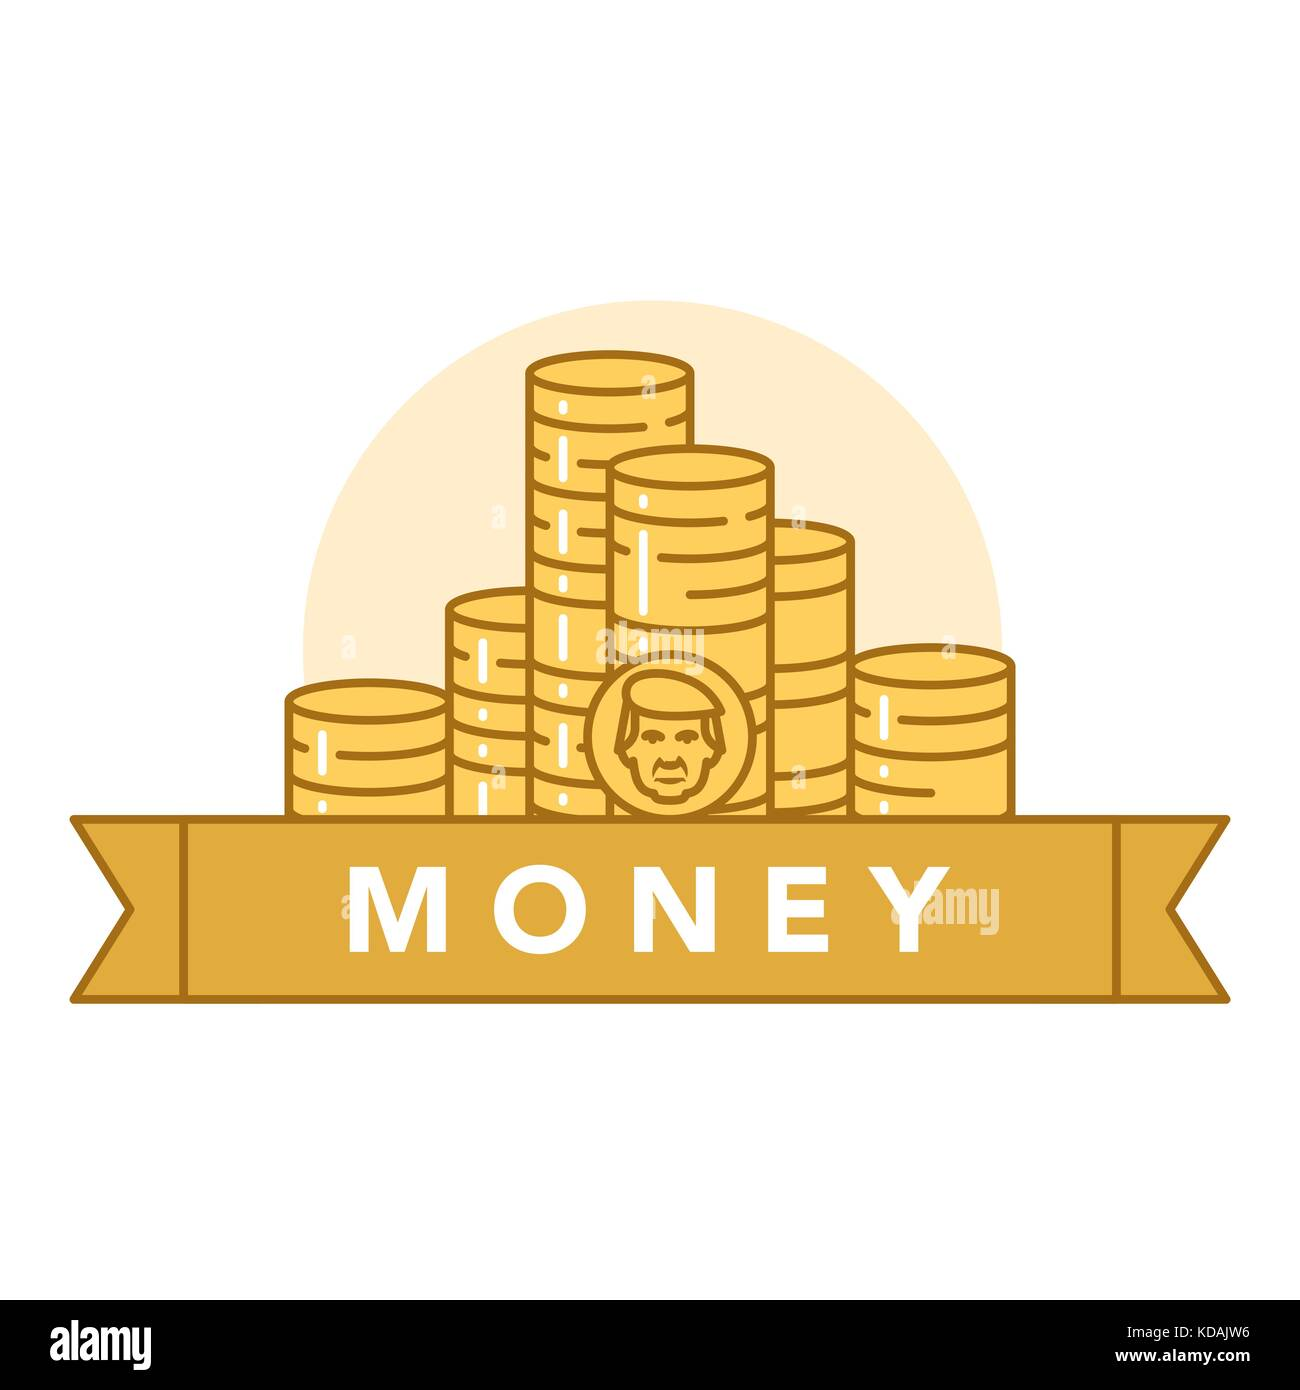 Vector illustration of golden coins on white background with lettering. Money and financial institutions topic. Stock Vector